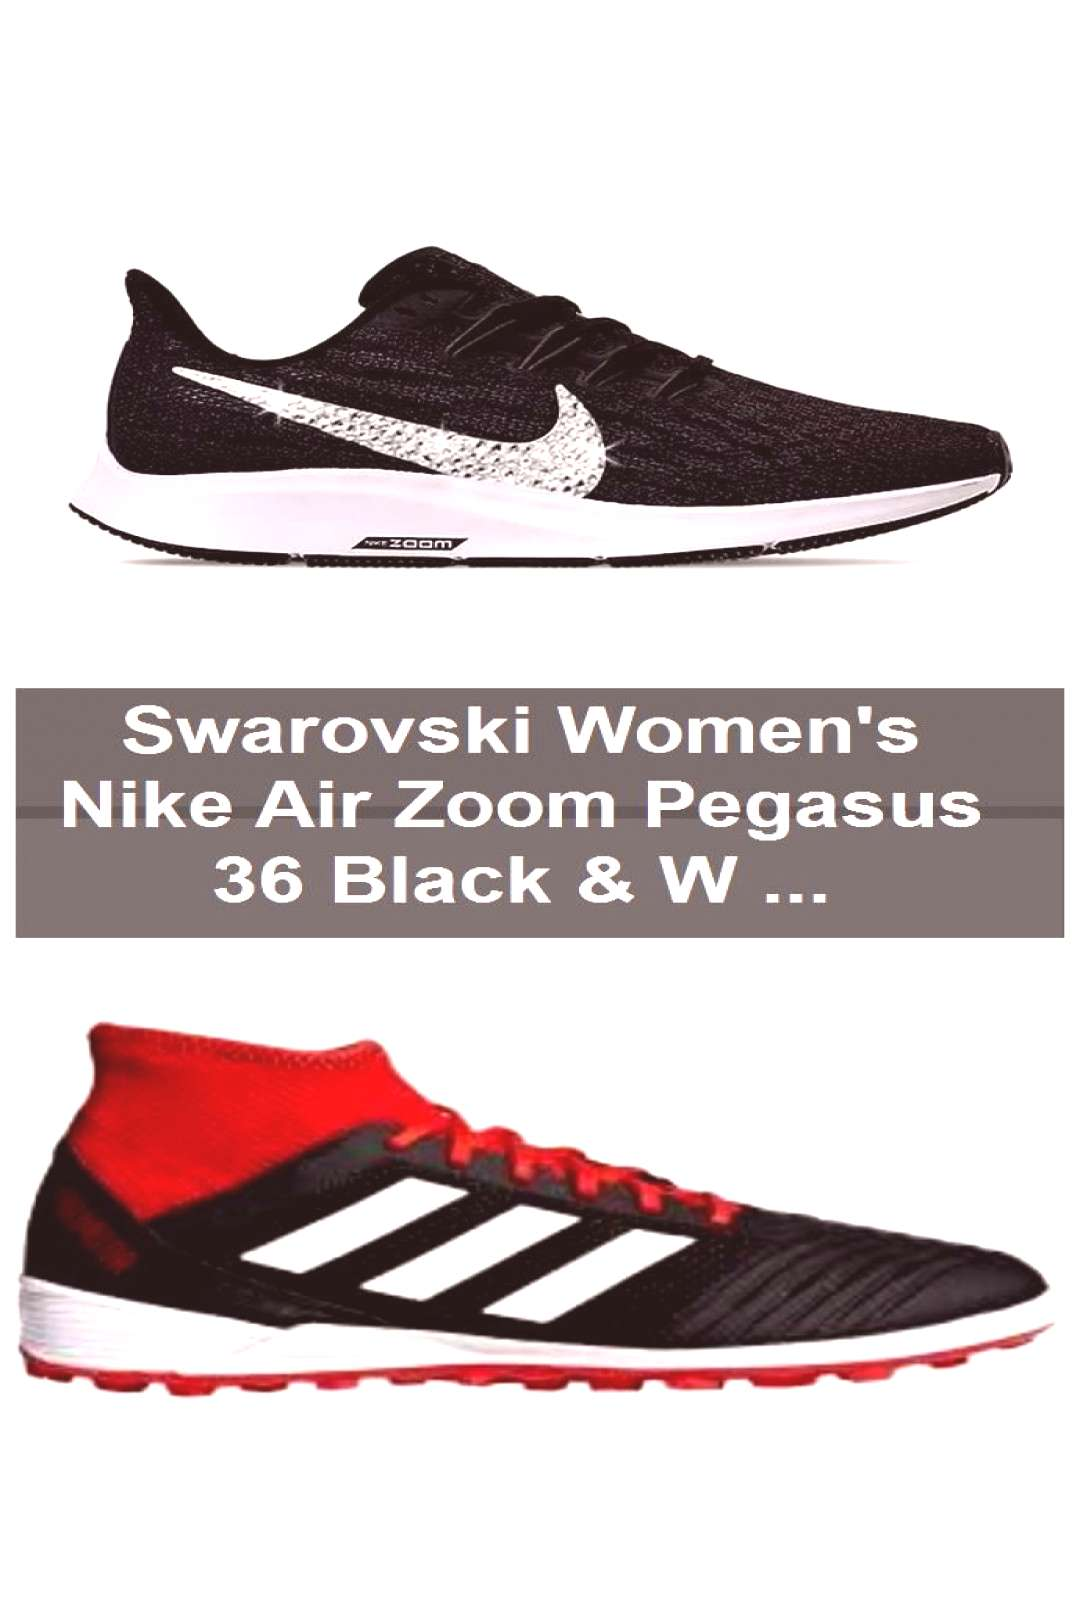 Swarovski Womens Nike Air Zoom Pegasus 36 Black amp White Sneakers Blinged Out With Clear Swar... Sw